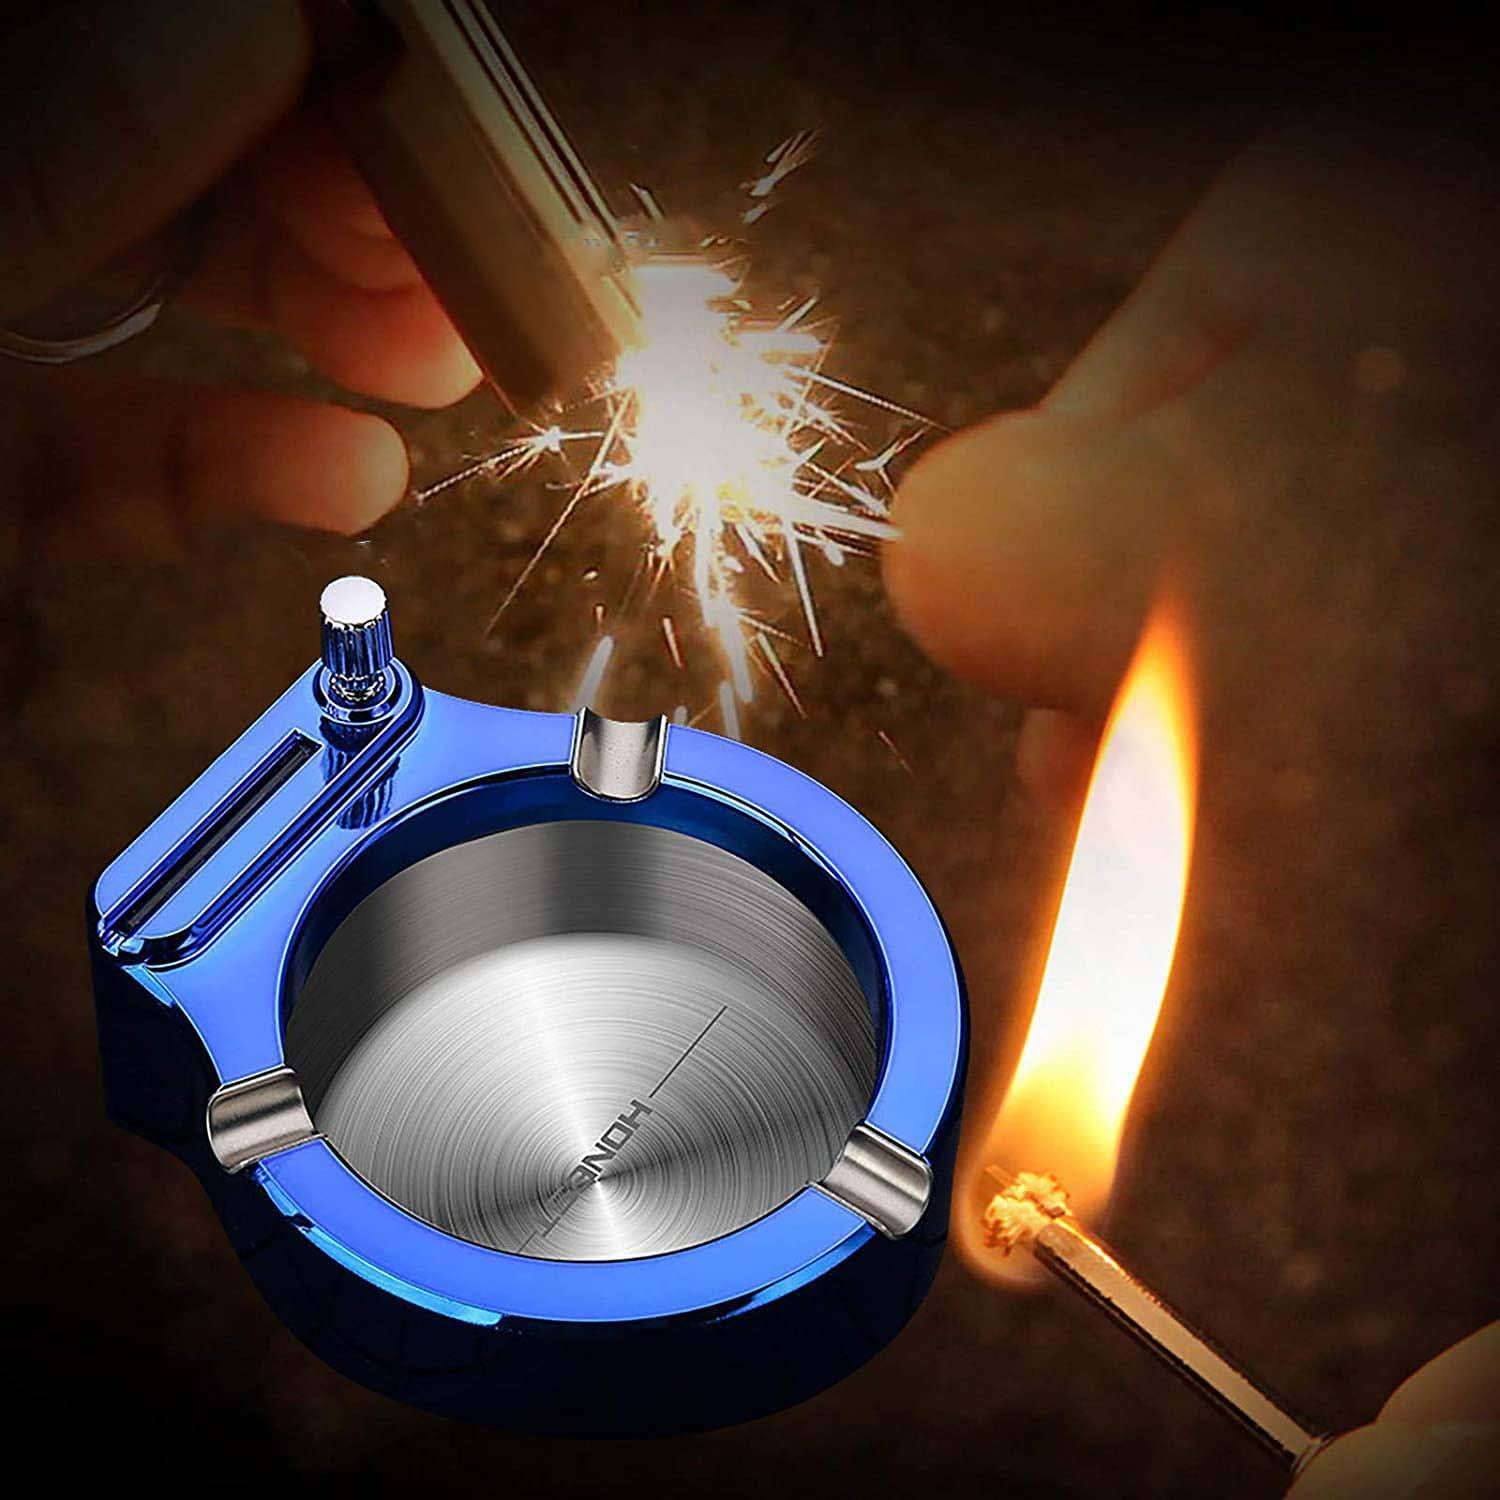 HelloWorld Creative Magnesium Match Ashtray Metal Hold 3 Pcs Smoking Supplies Office Accessories Gift(Kerosene Is Not Included)